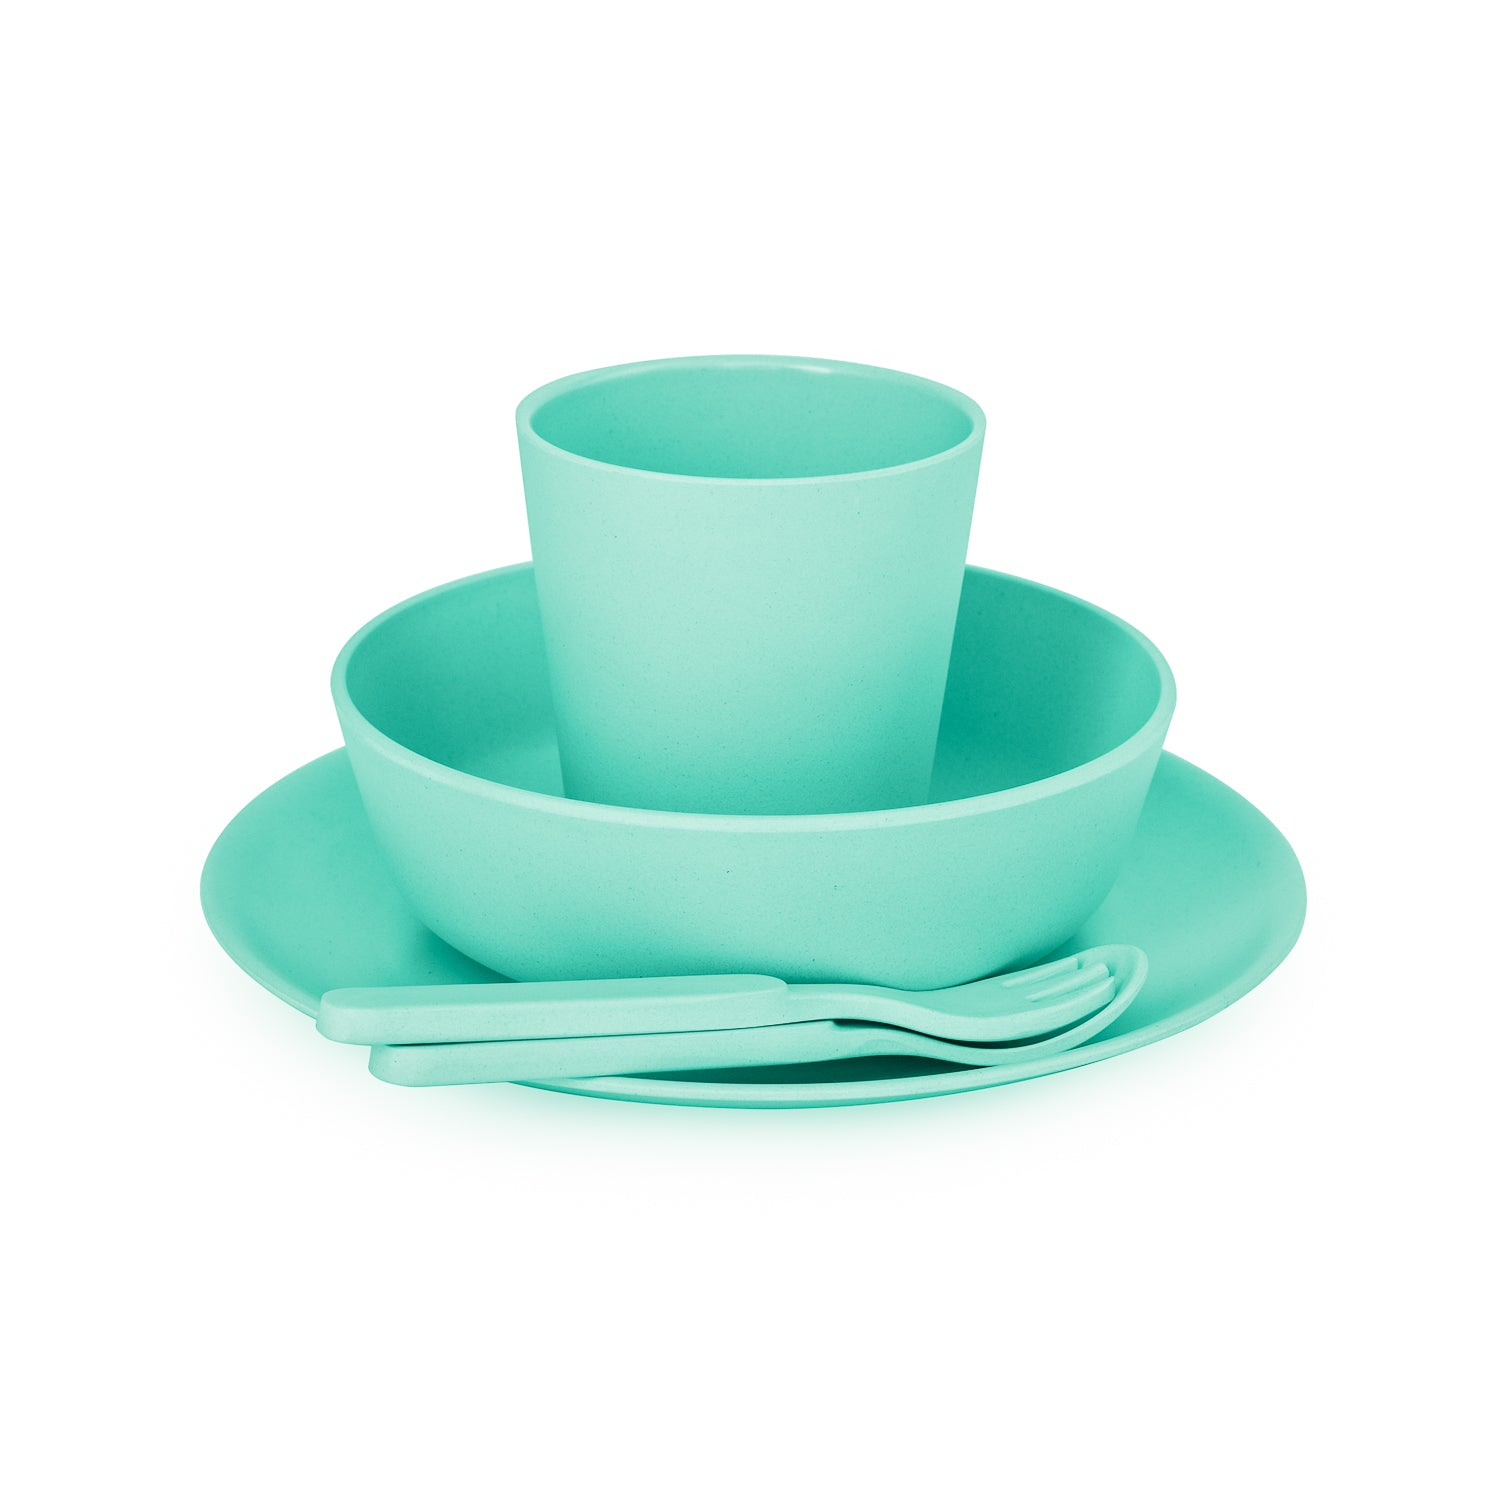 Bobo&Boo Non-Toxic, BPA-Free, 5 Piece Children's Bamboo Dinner Set- Mint Green